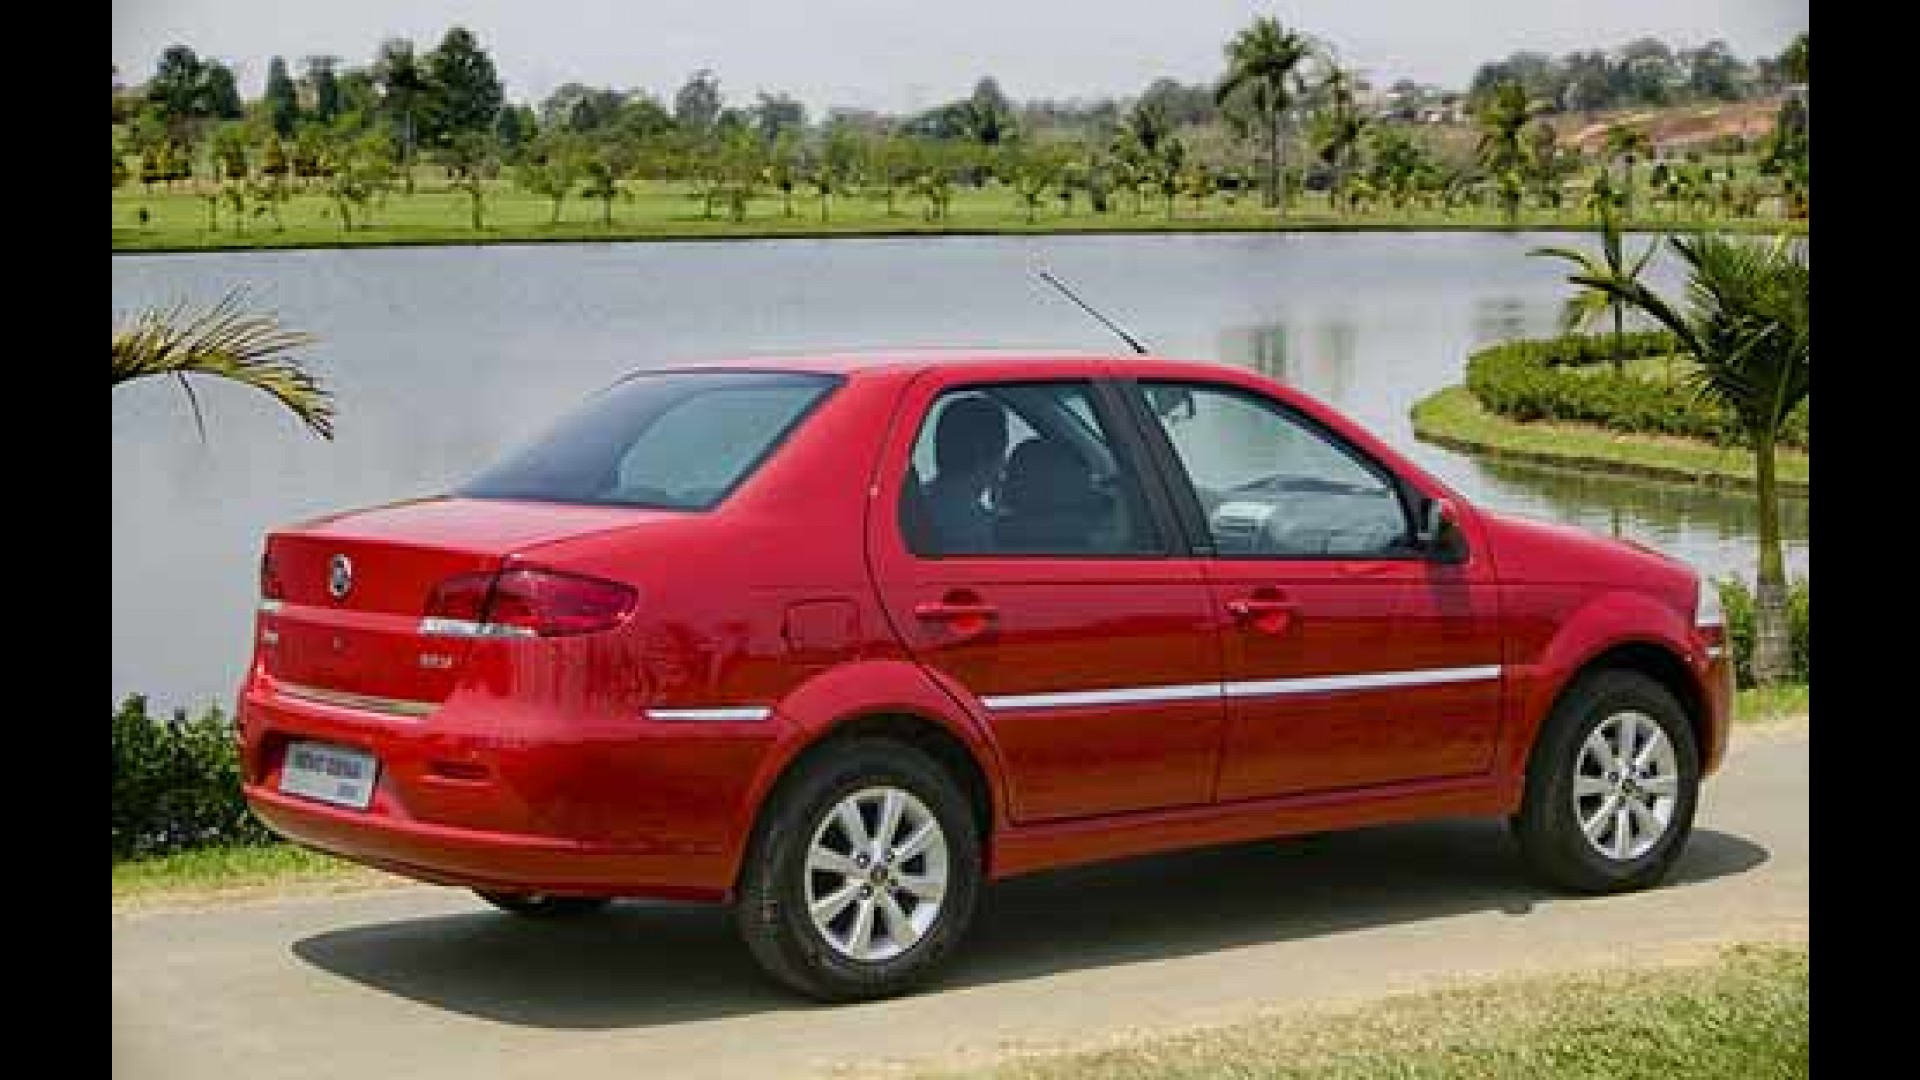 fiat mjd page bhp reports stile initial siena drives img to from ownership forum test graduating palio